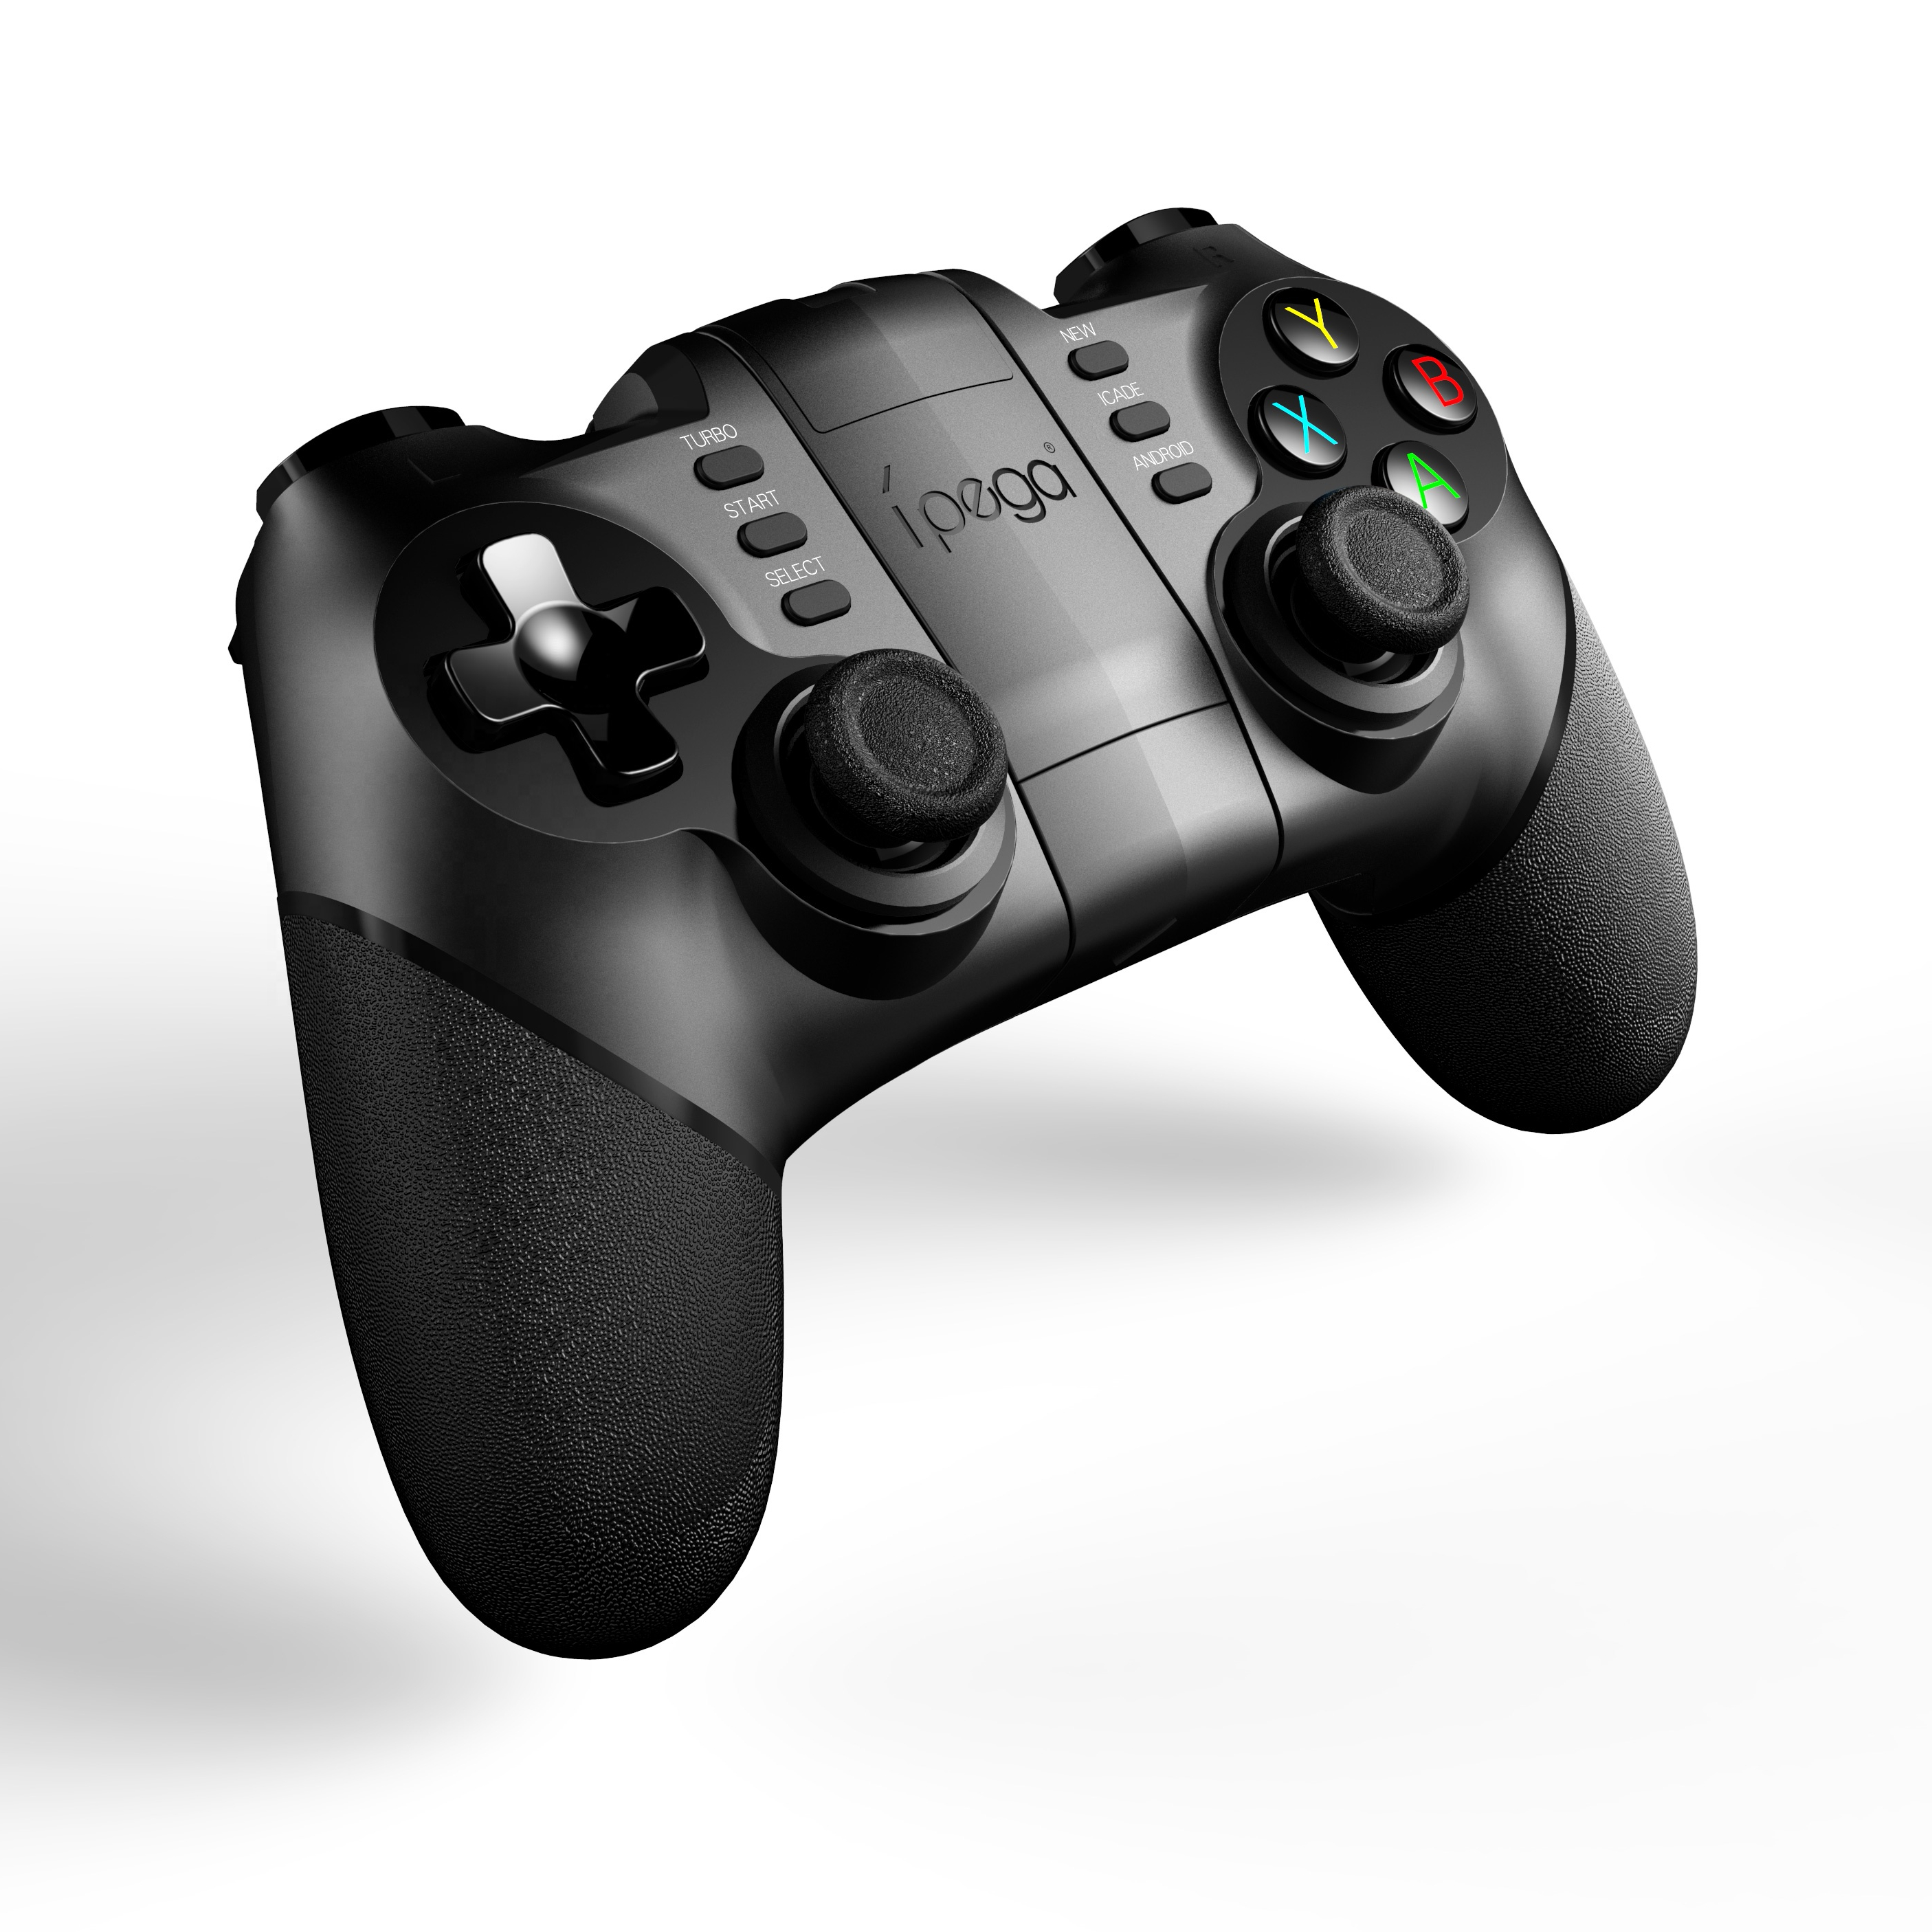 IPEGA Gamepad PG-9077 Gaming <strong>controller</strong> support for Android tablet / smart phone / MAC / IOS